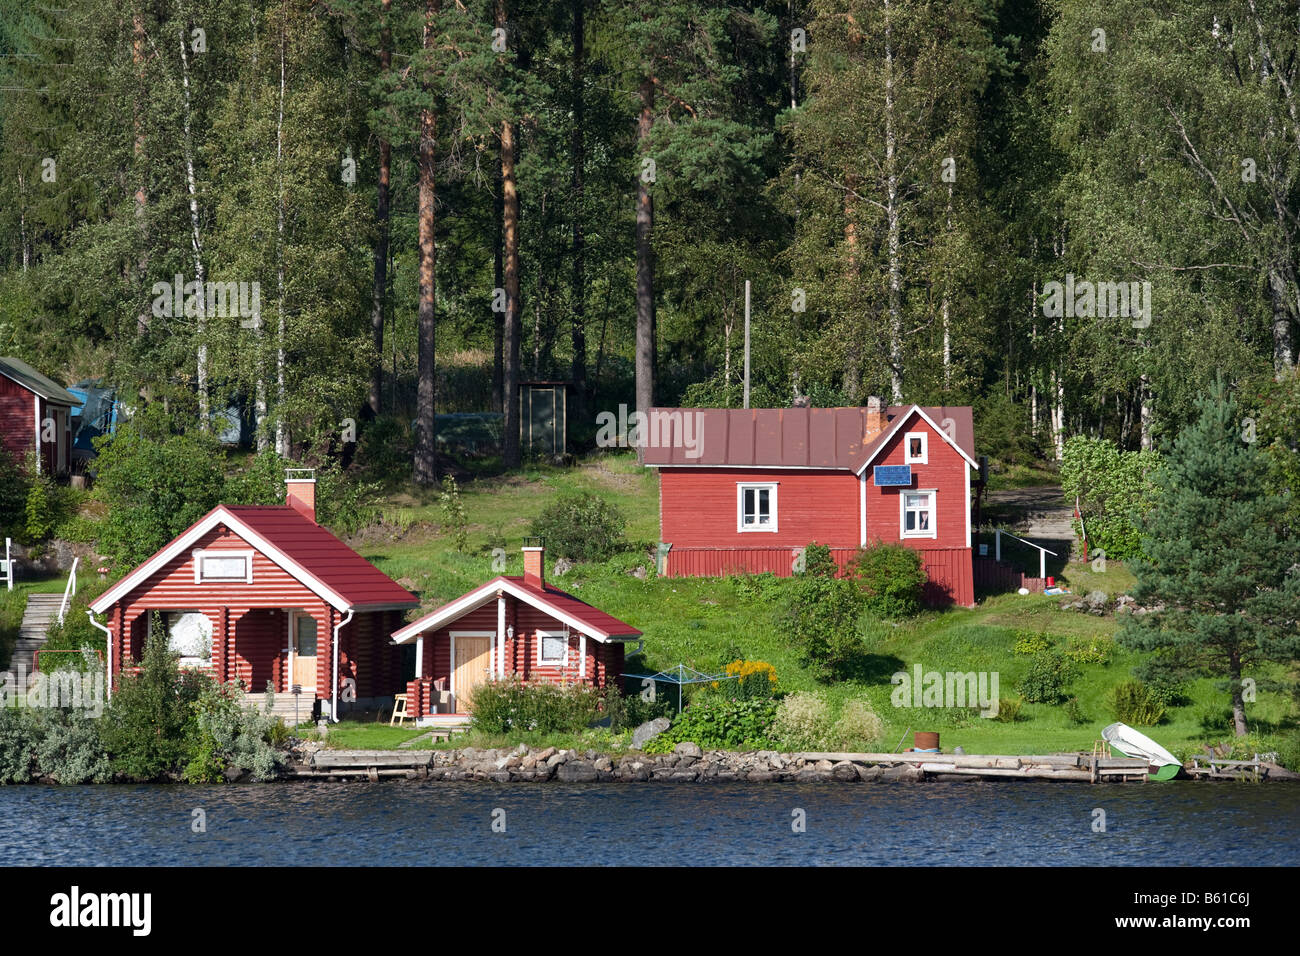 Finnish summer cottage and sauna buildings by a lake , Finland - Stock Image